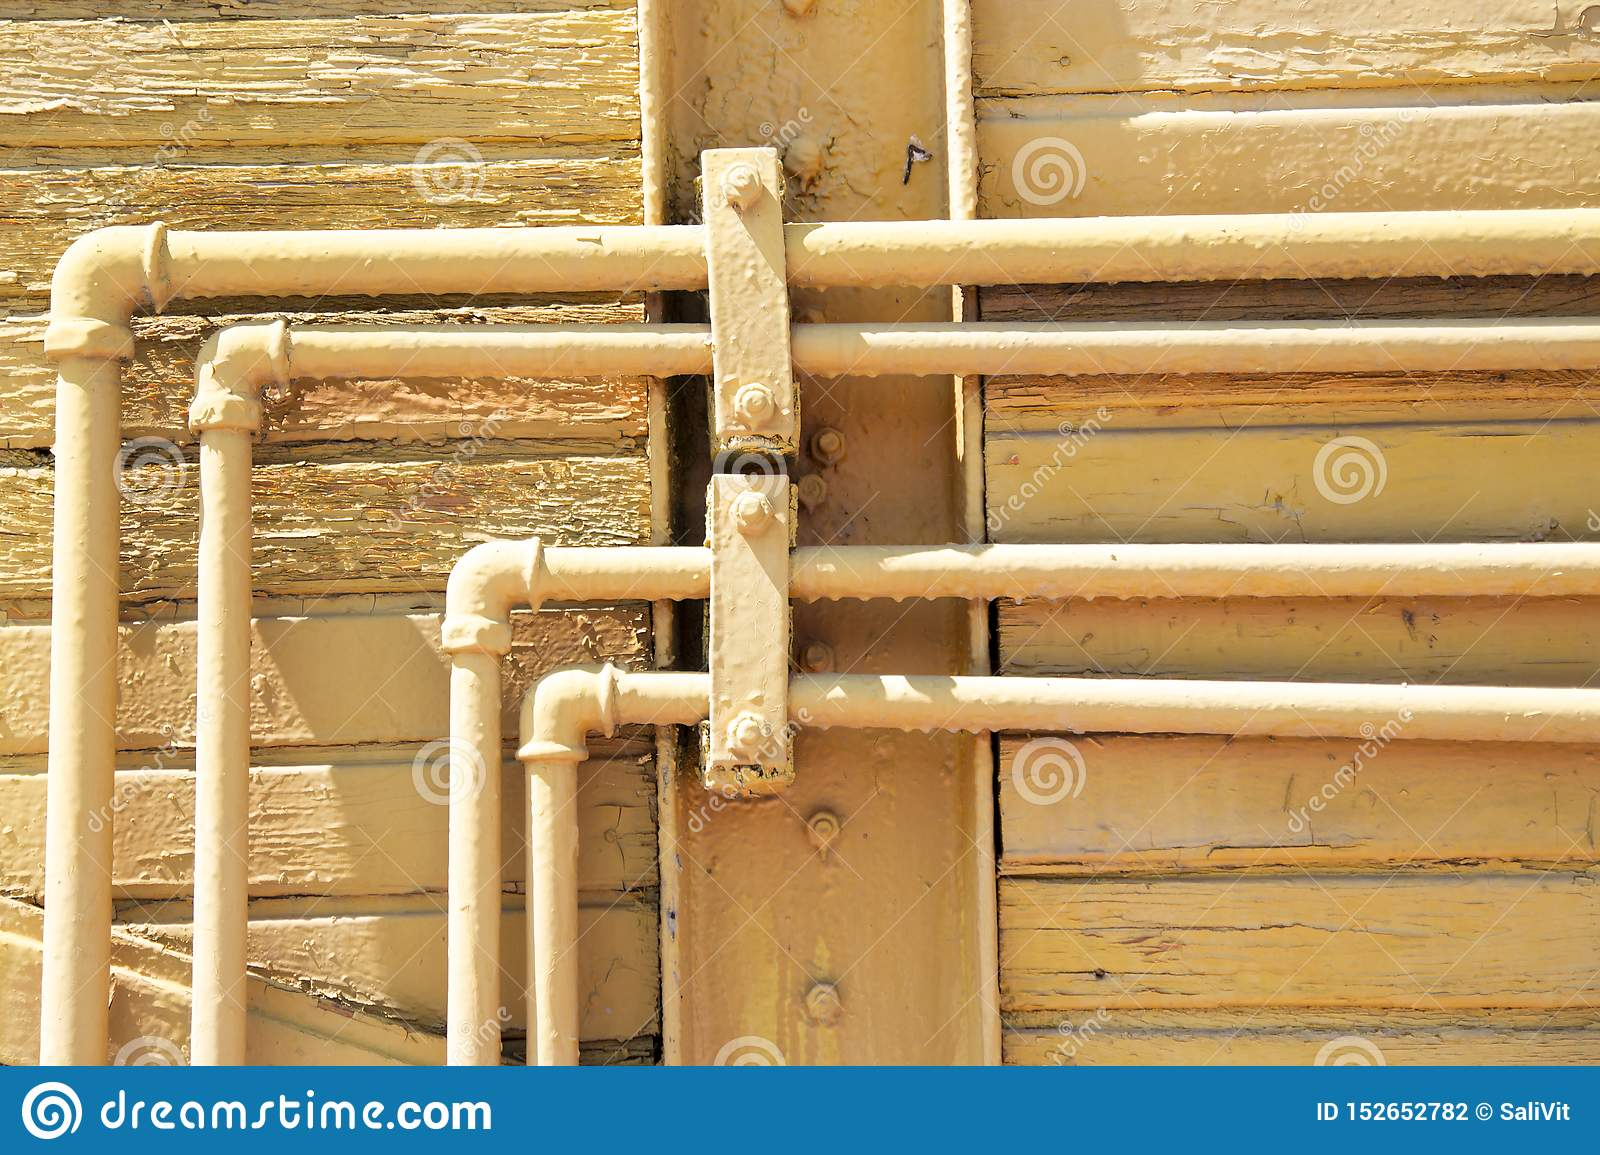 Old yellow pipes on the wooden wall. Scratch Grunge Urban country Background. Texture for your design.